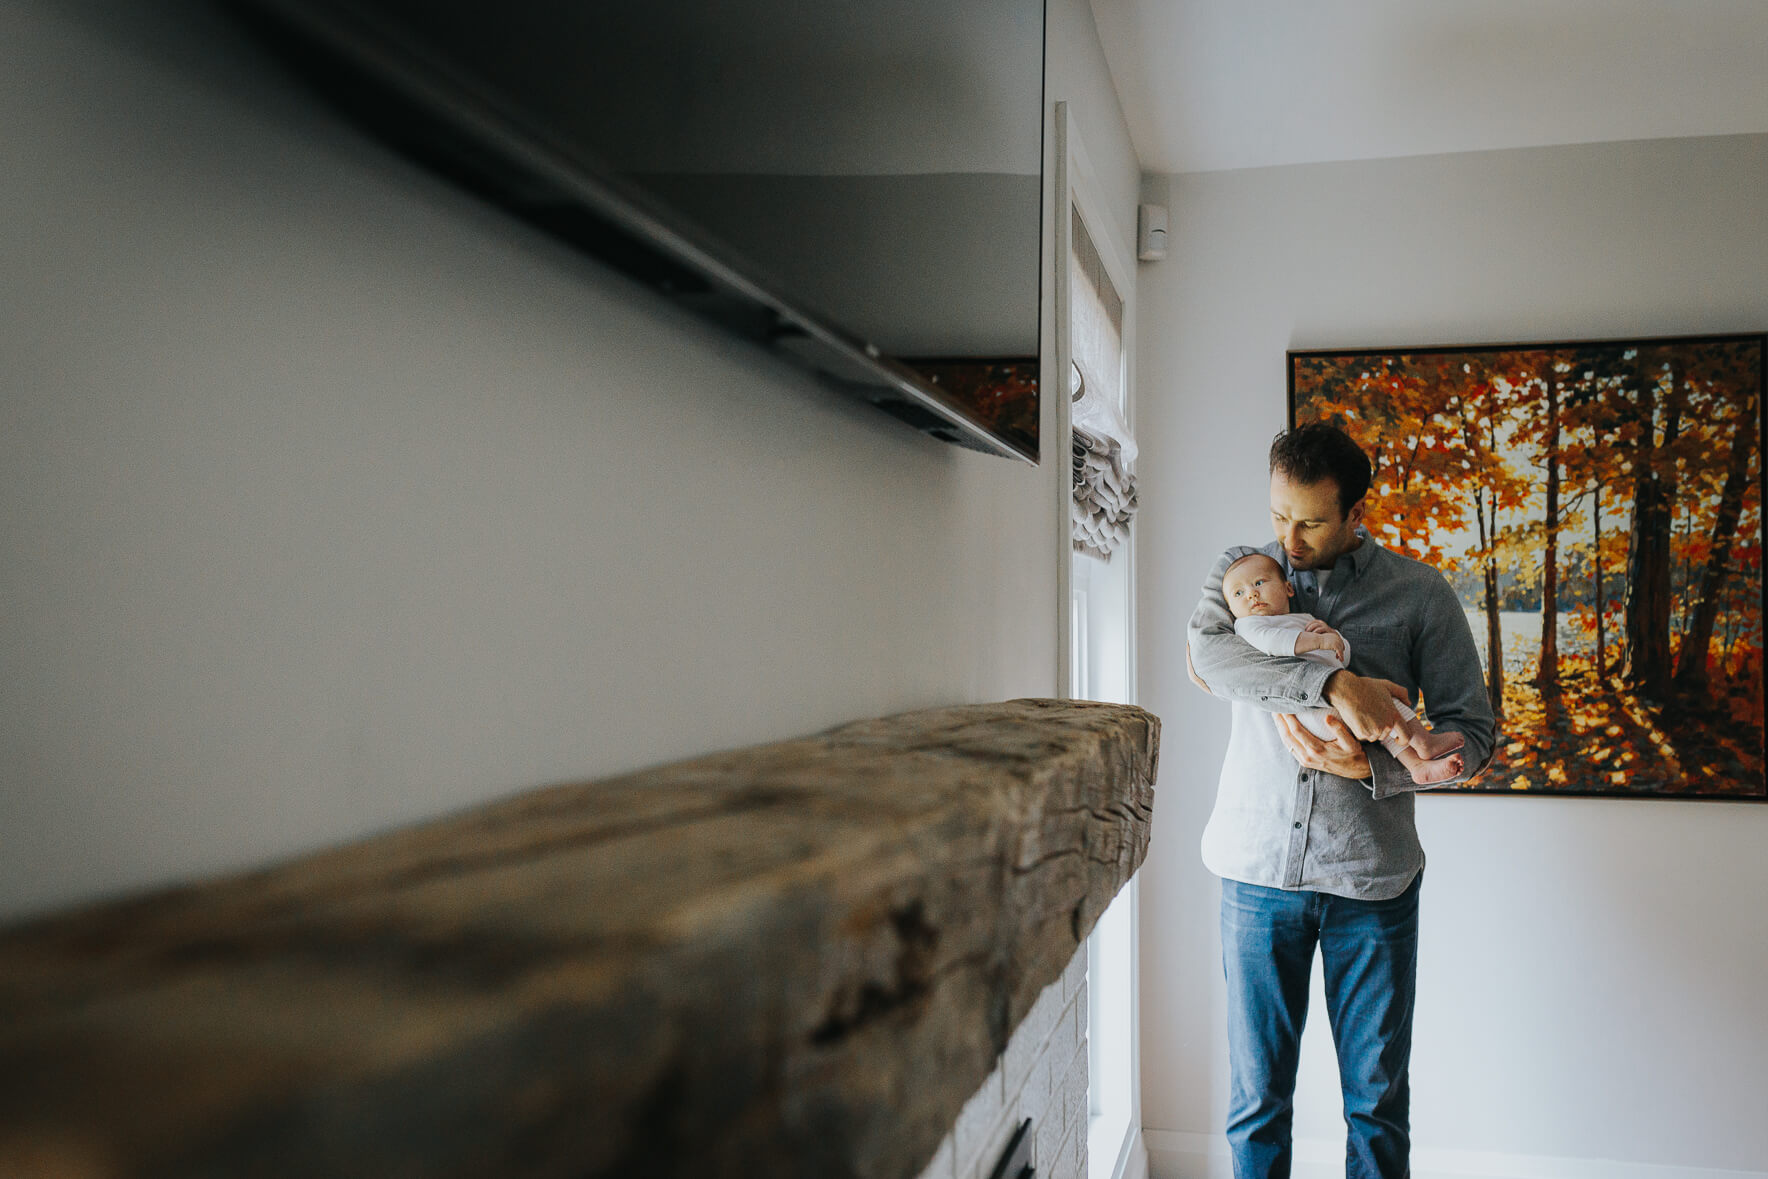 Artistic newborn photo showing dad holding his baby by the window.